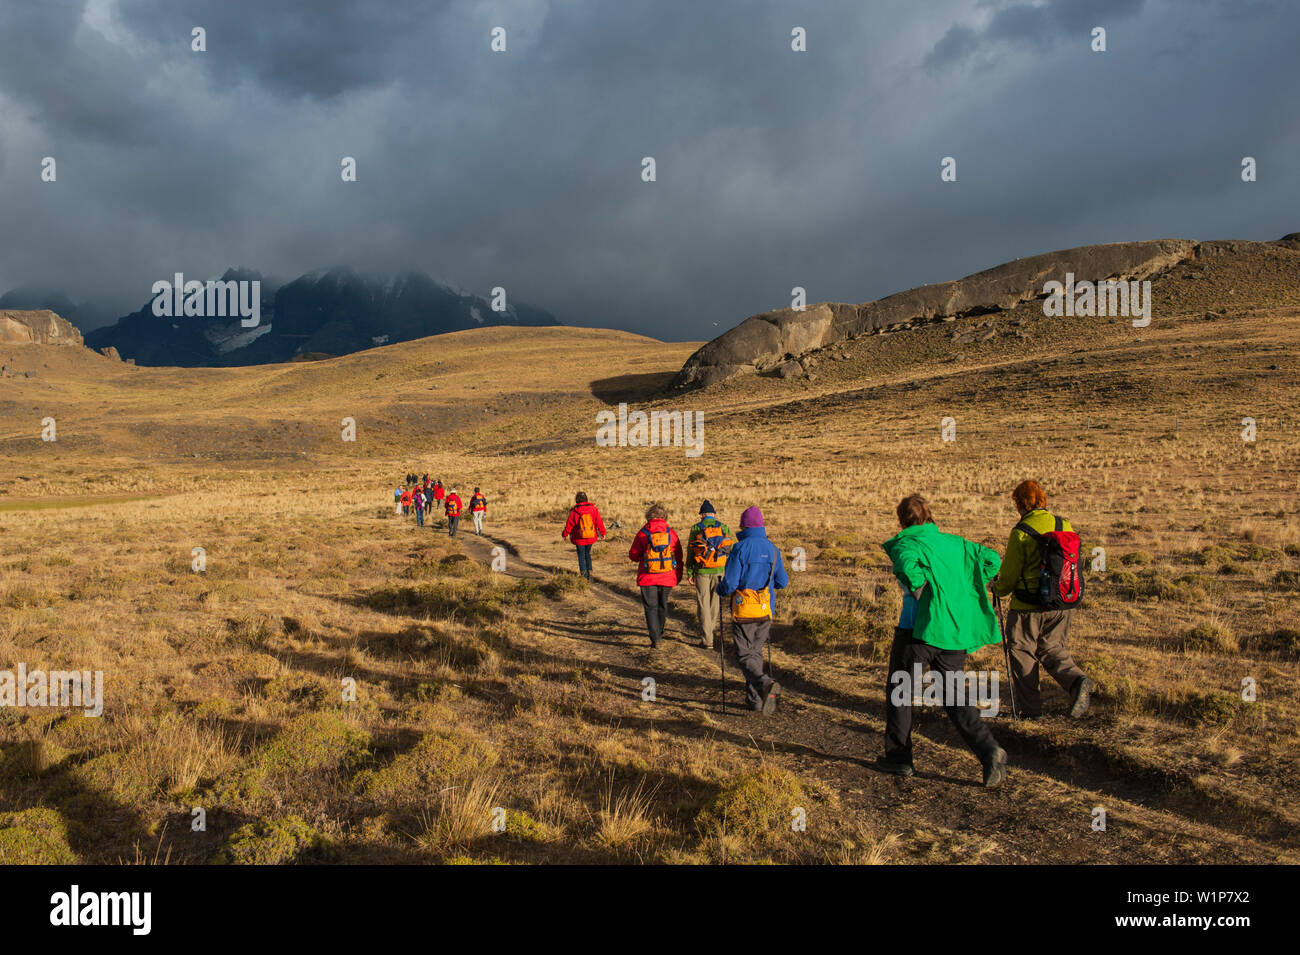 Visitors trek across the rolling hills in early morning sunlight, Torres del Paine National Park, Magallanes y de la Antartica Chilena, Patagonia, Chi - Stock Image